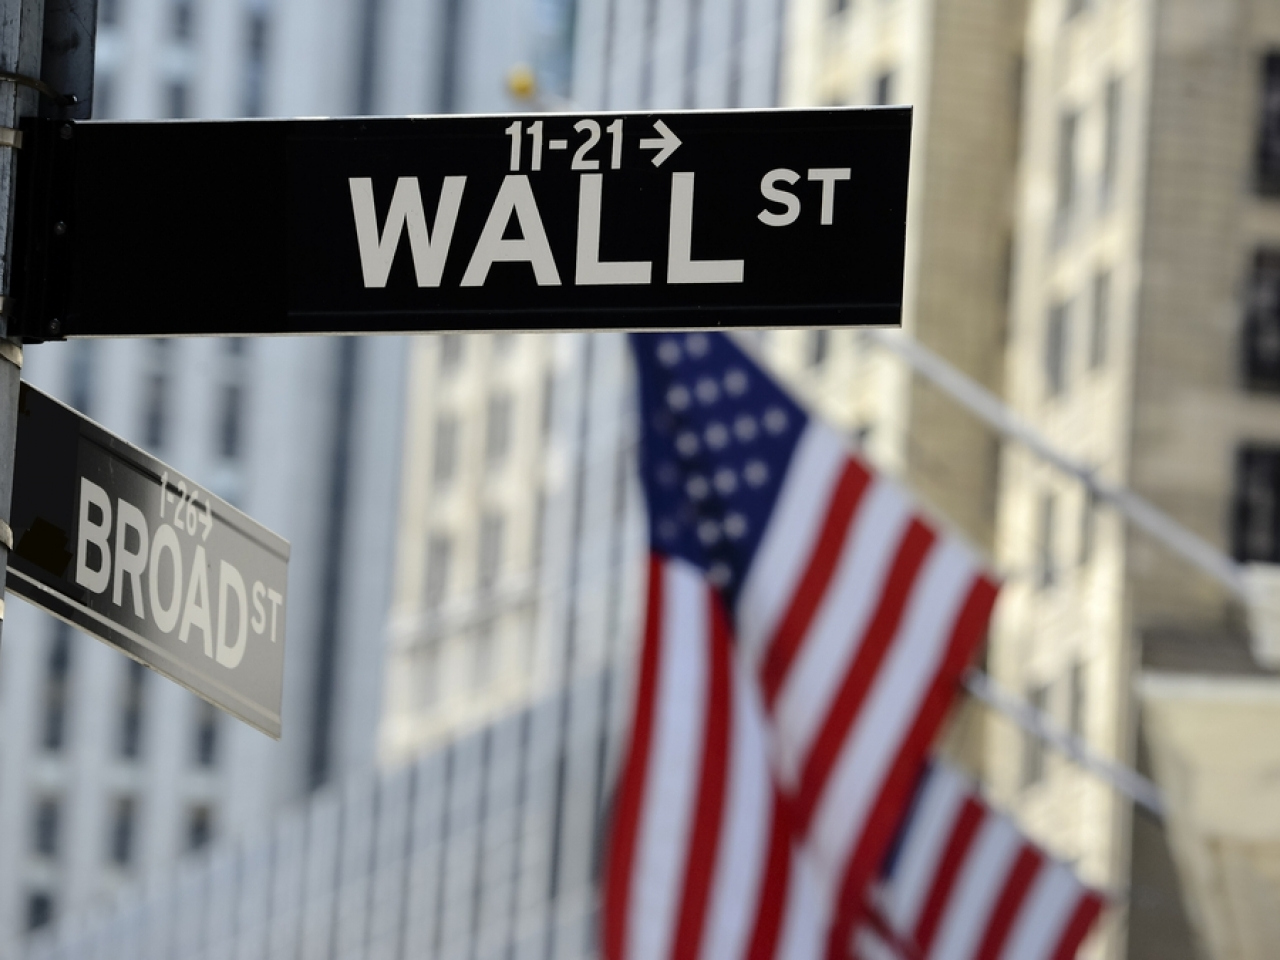 Wall Street closed down despite data indicating inflation pressures are easing. Photo: Shutterstock